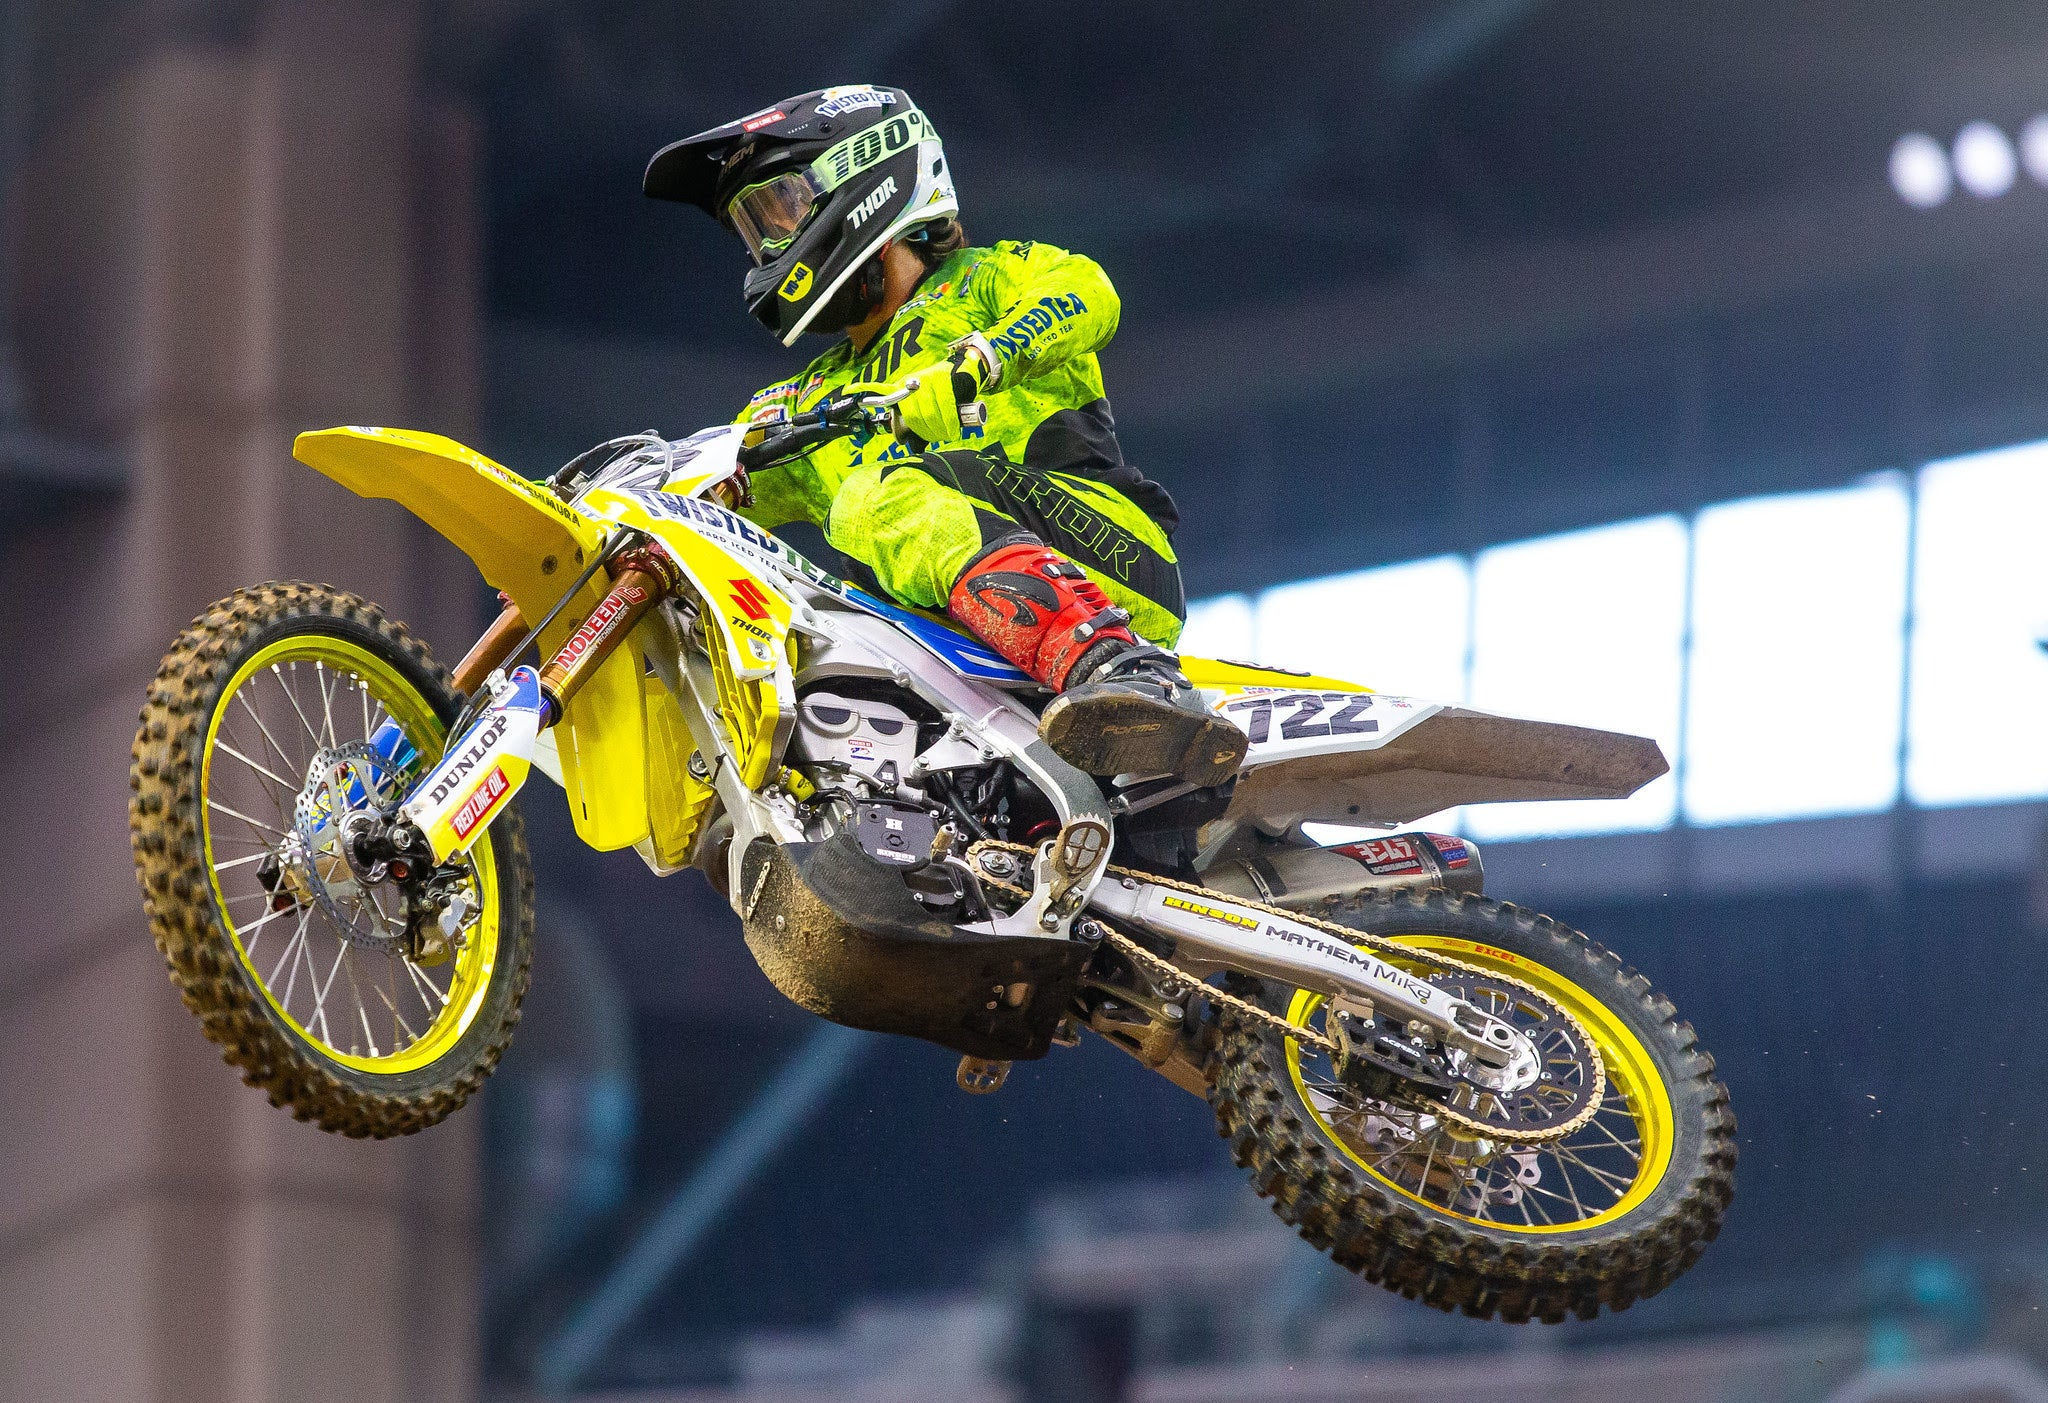 Adam Enticknap (722) rode smoothly and is excited to continue racing his RM-Z450